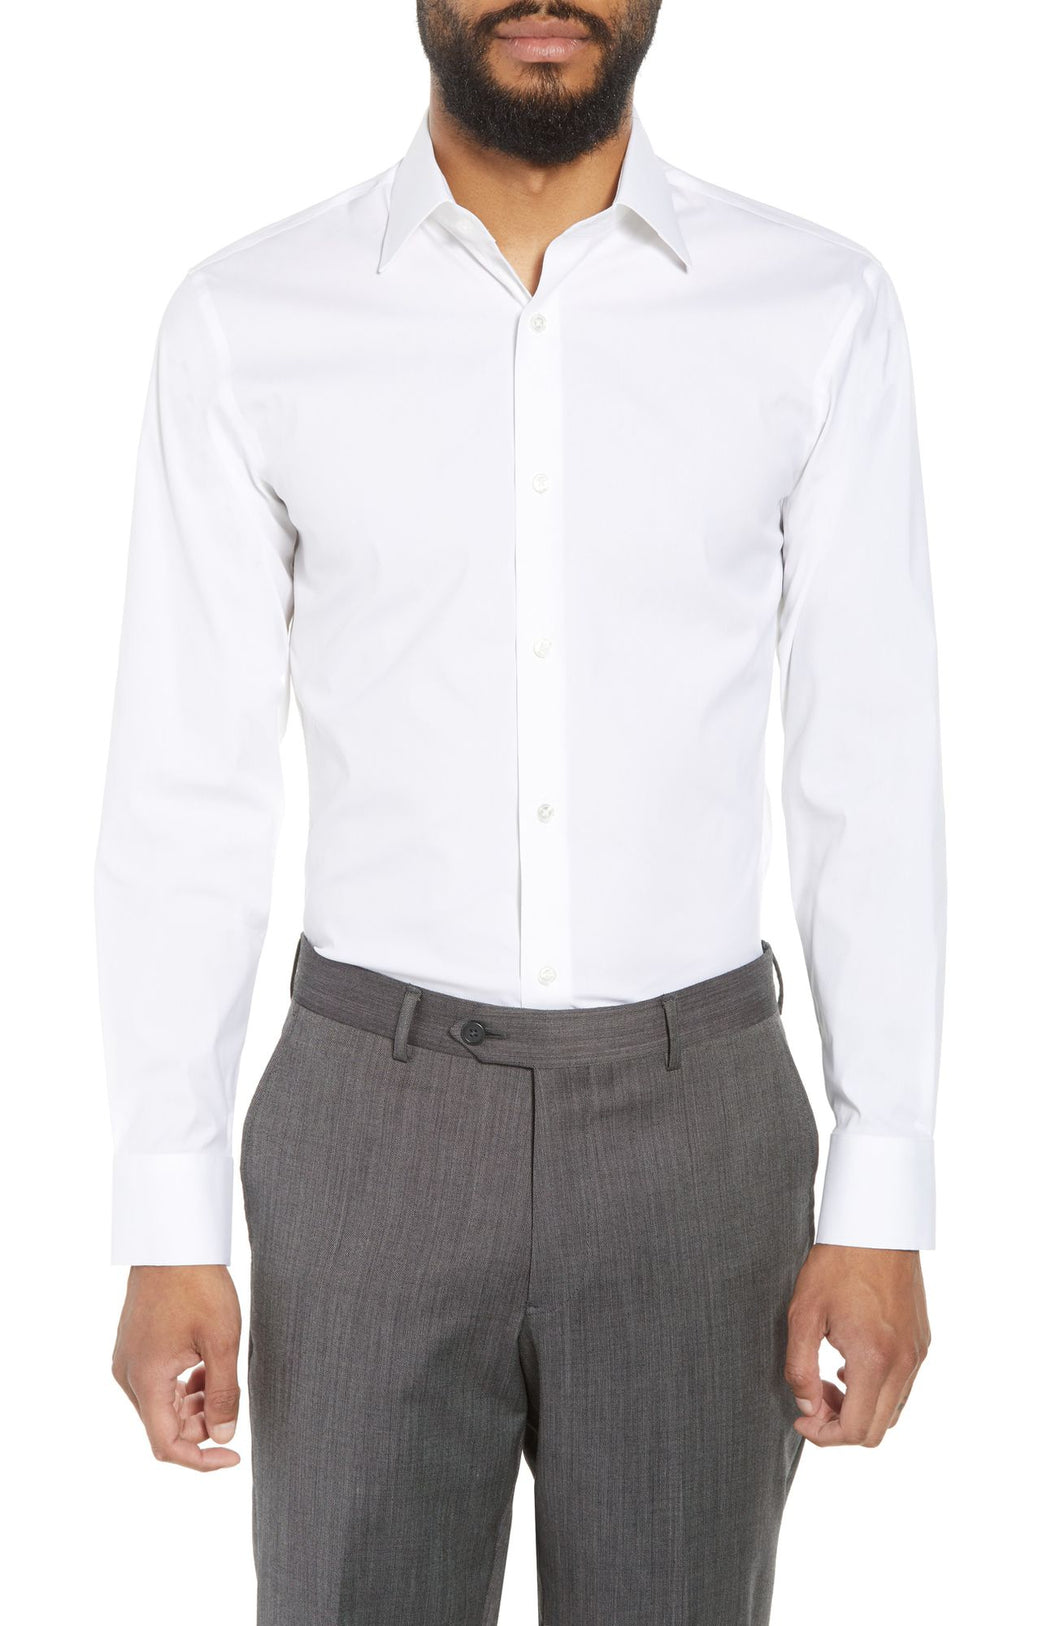 Jetsetter Slim Fit Stretch Solid Dress Shirt